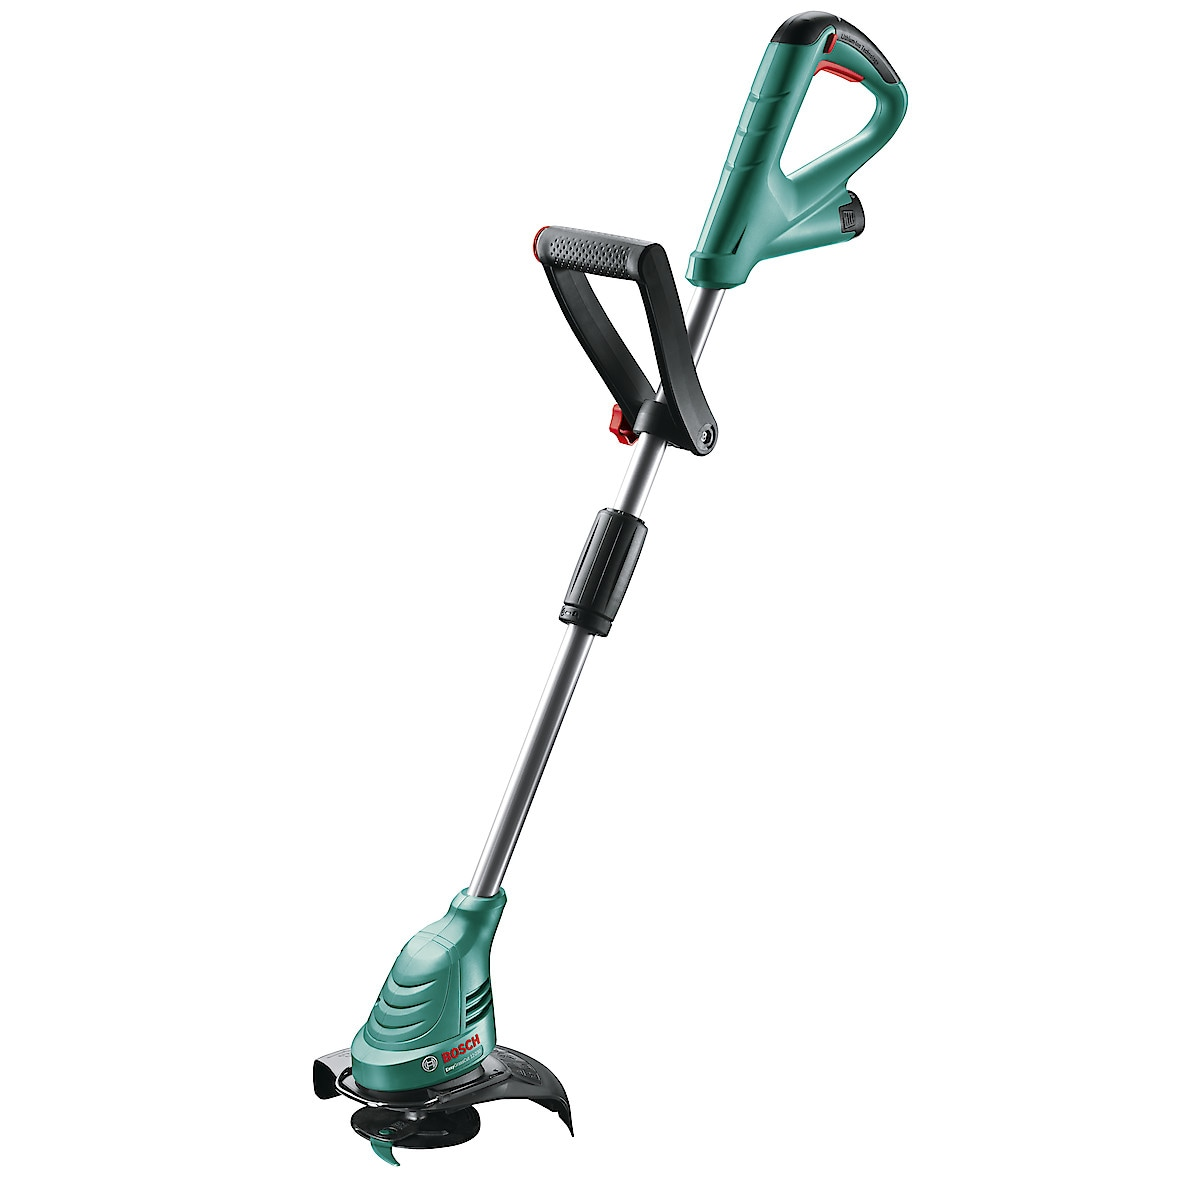 Bosch 12-230 12 V Grass Trimmer